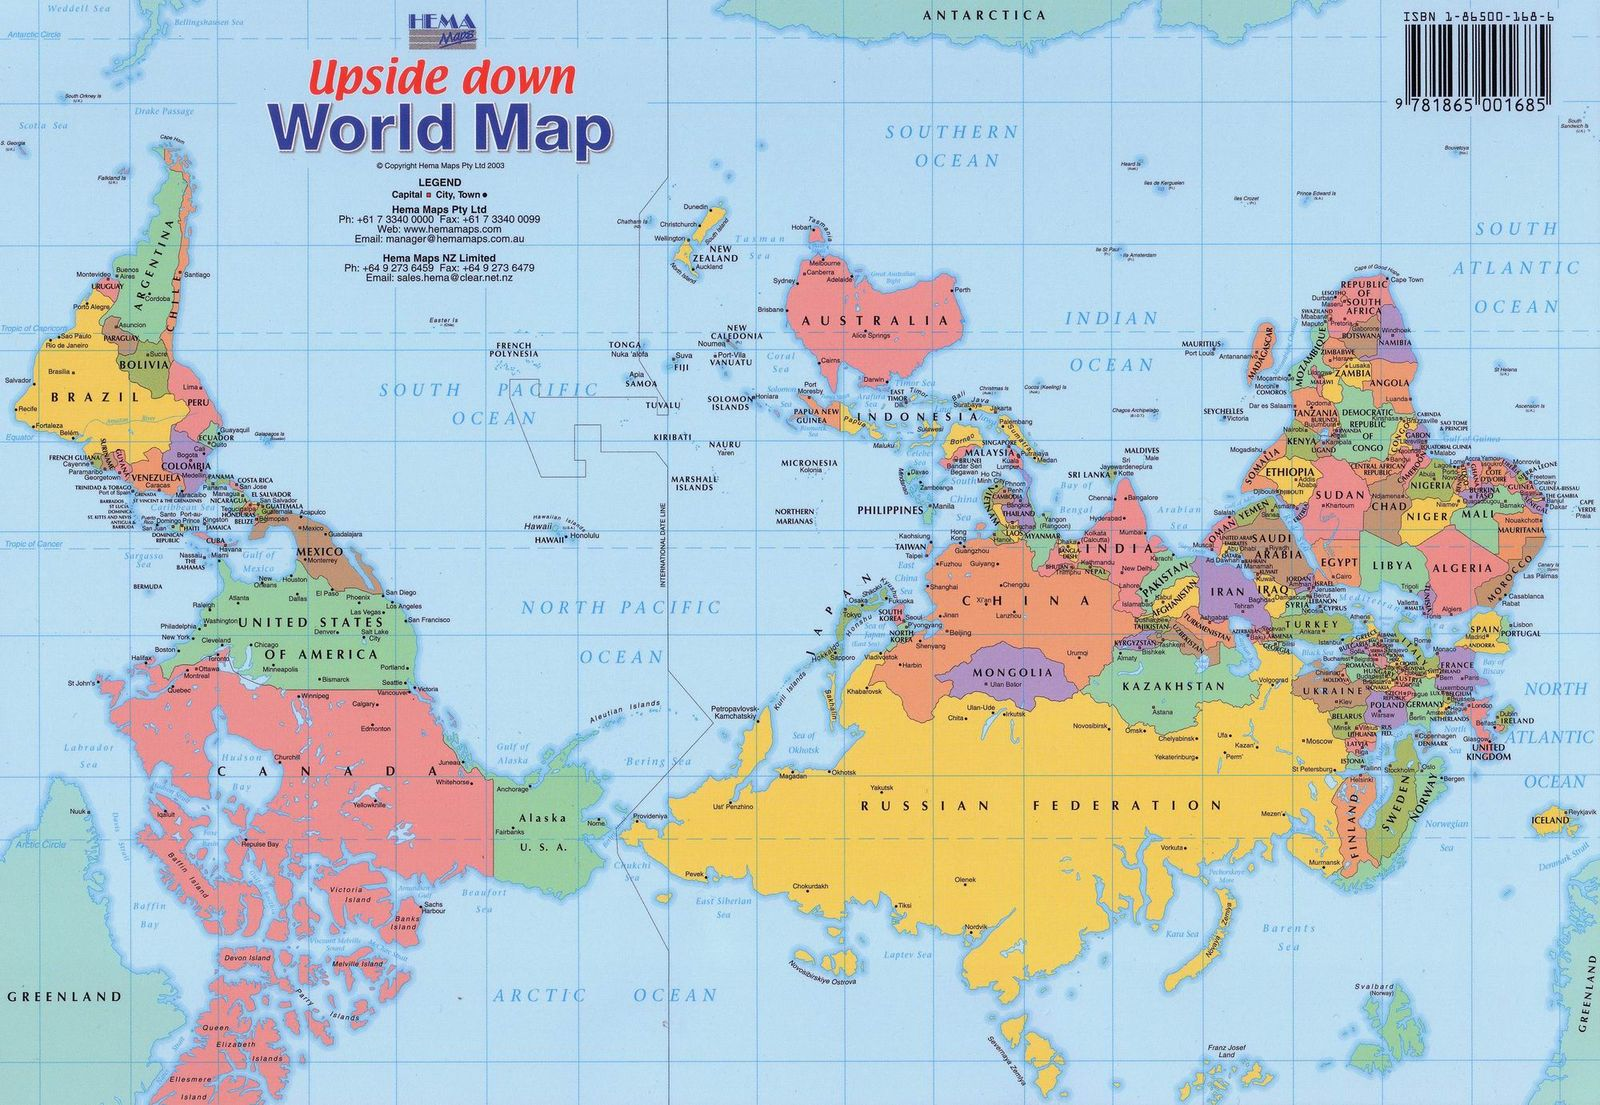 The Real World Map You Are Being Lied To.D E C E P T O L O G Y 04 01 2010 05 01 2010